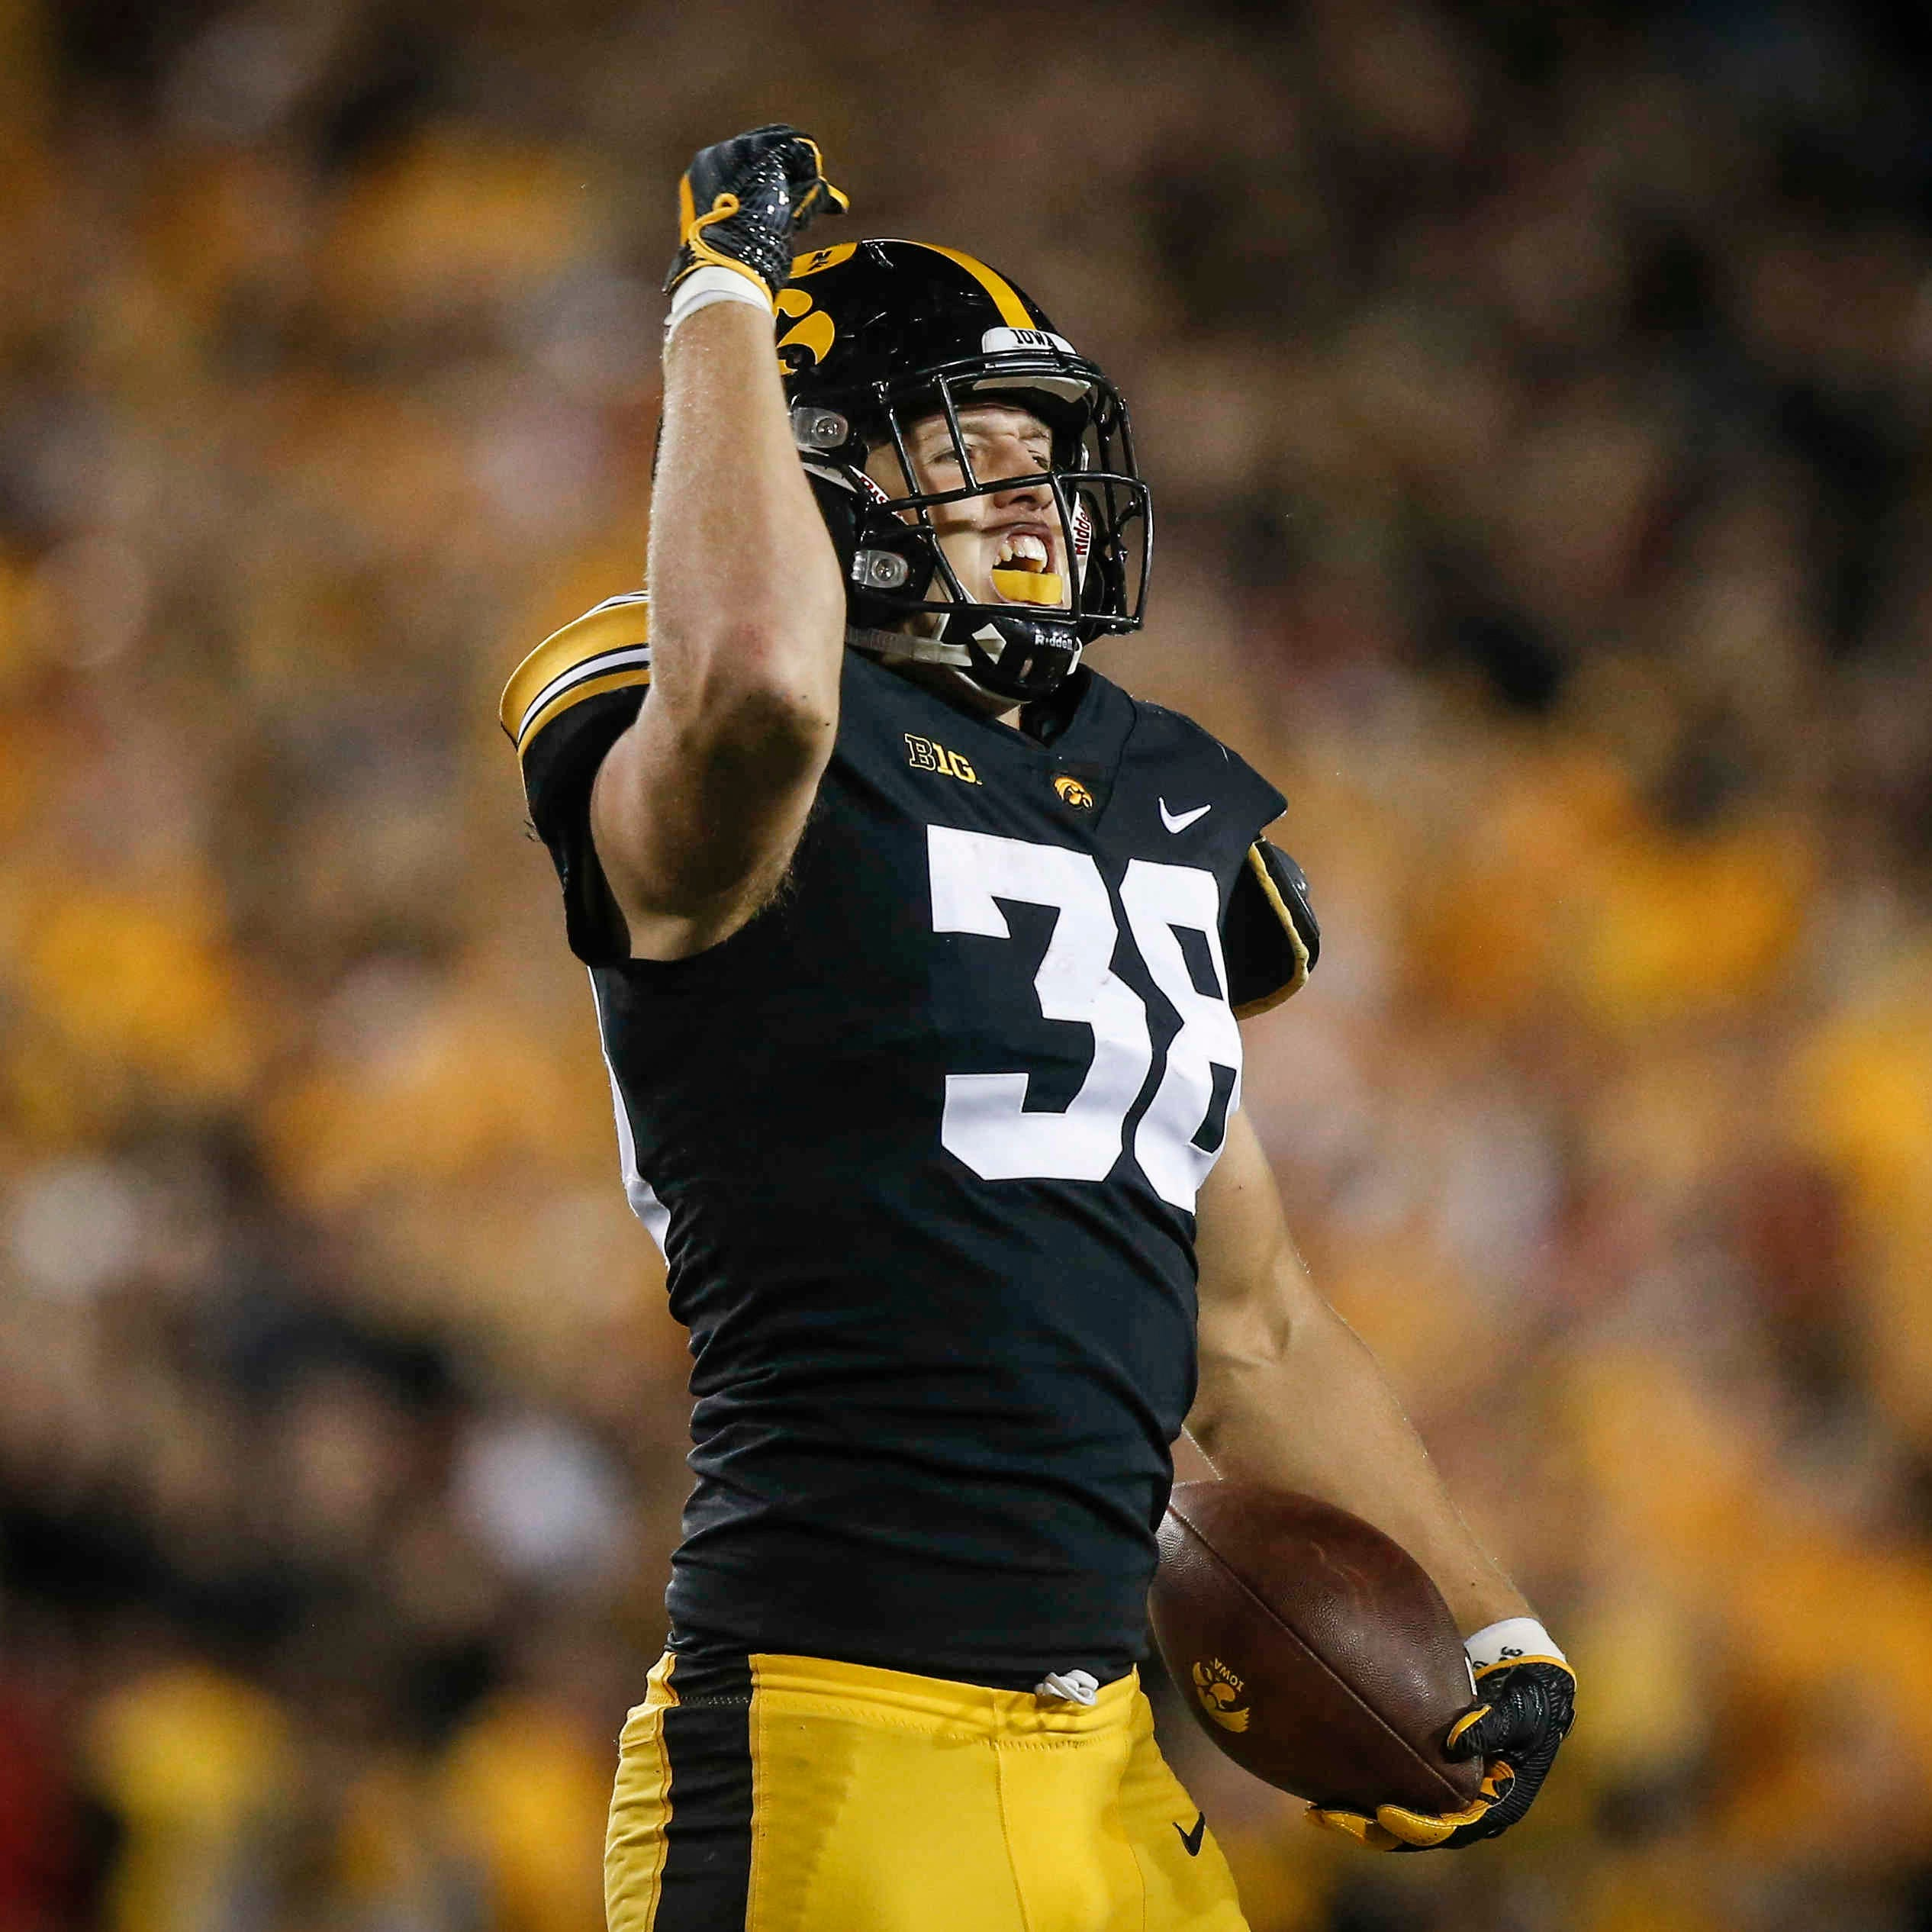 Leistikow's 7 Hawkeye Thoughts: On Iowa's discovery of T.J. Hockenson, NFL dilemma for Amani Hooker